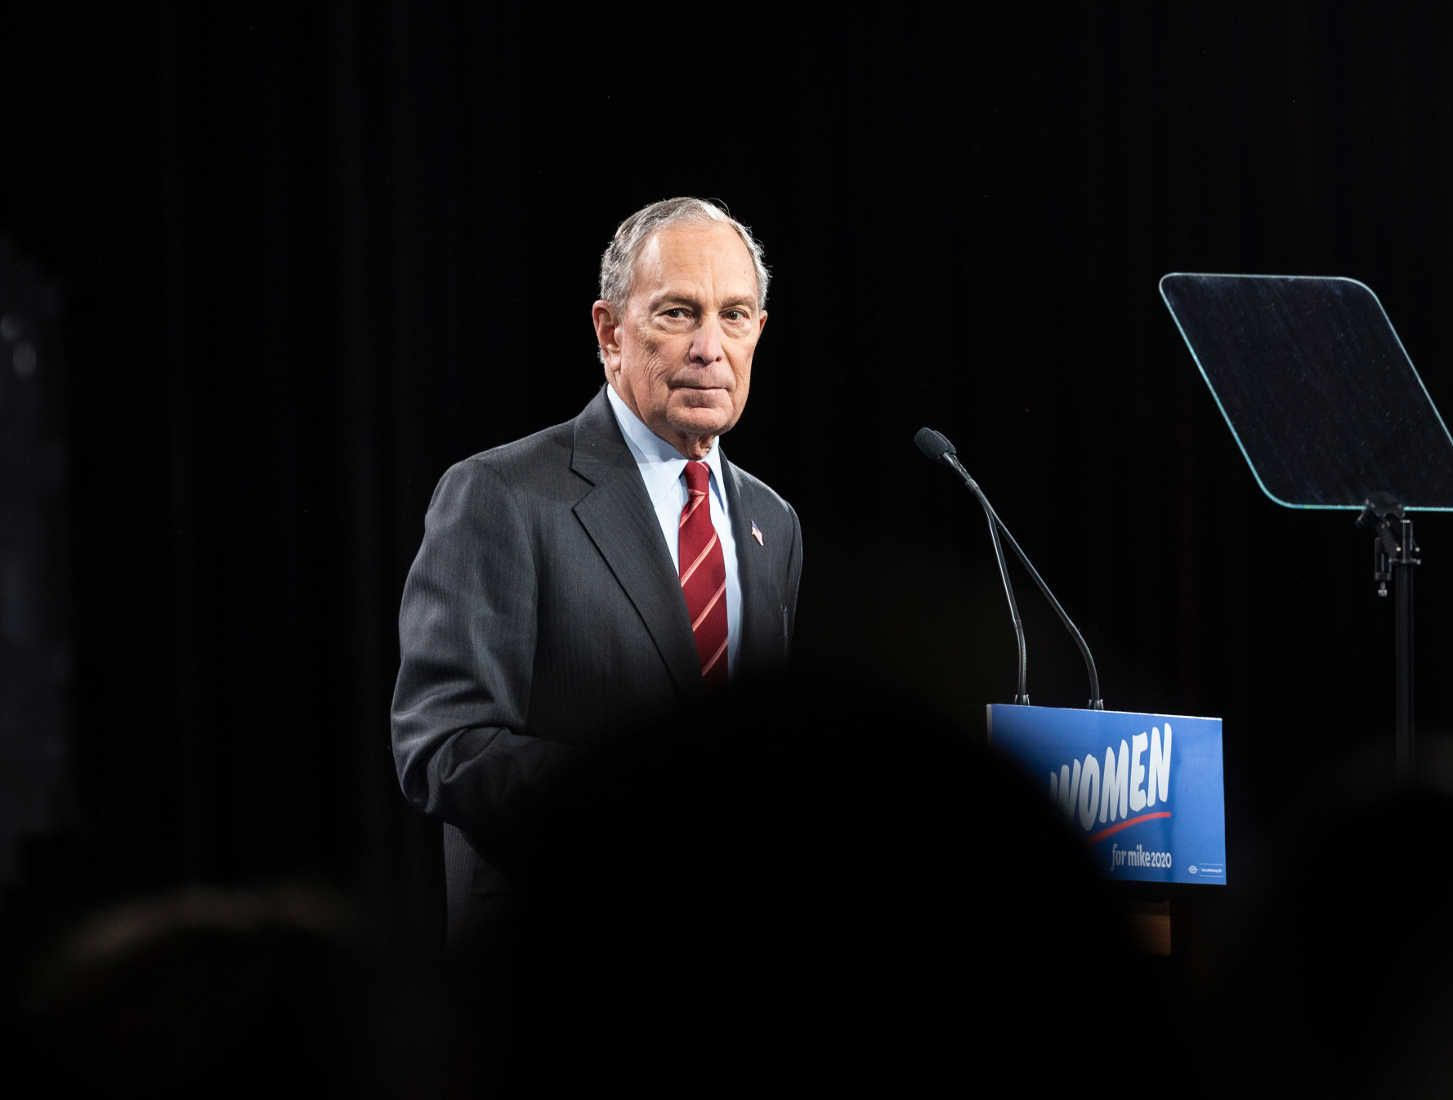 REPORT: Bloomberg's Billions a Huge Waste in the November Elections